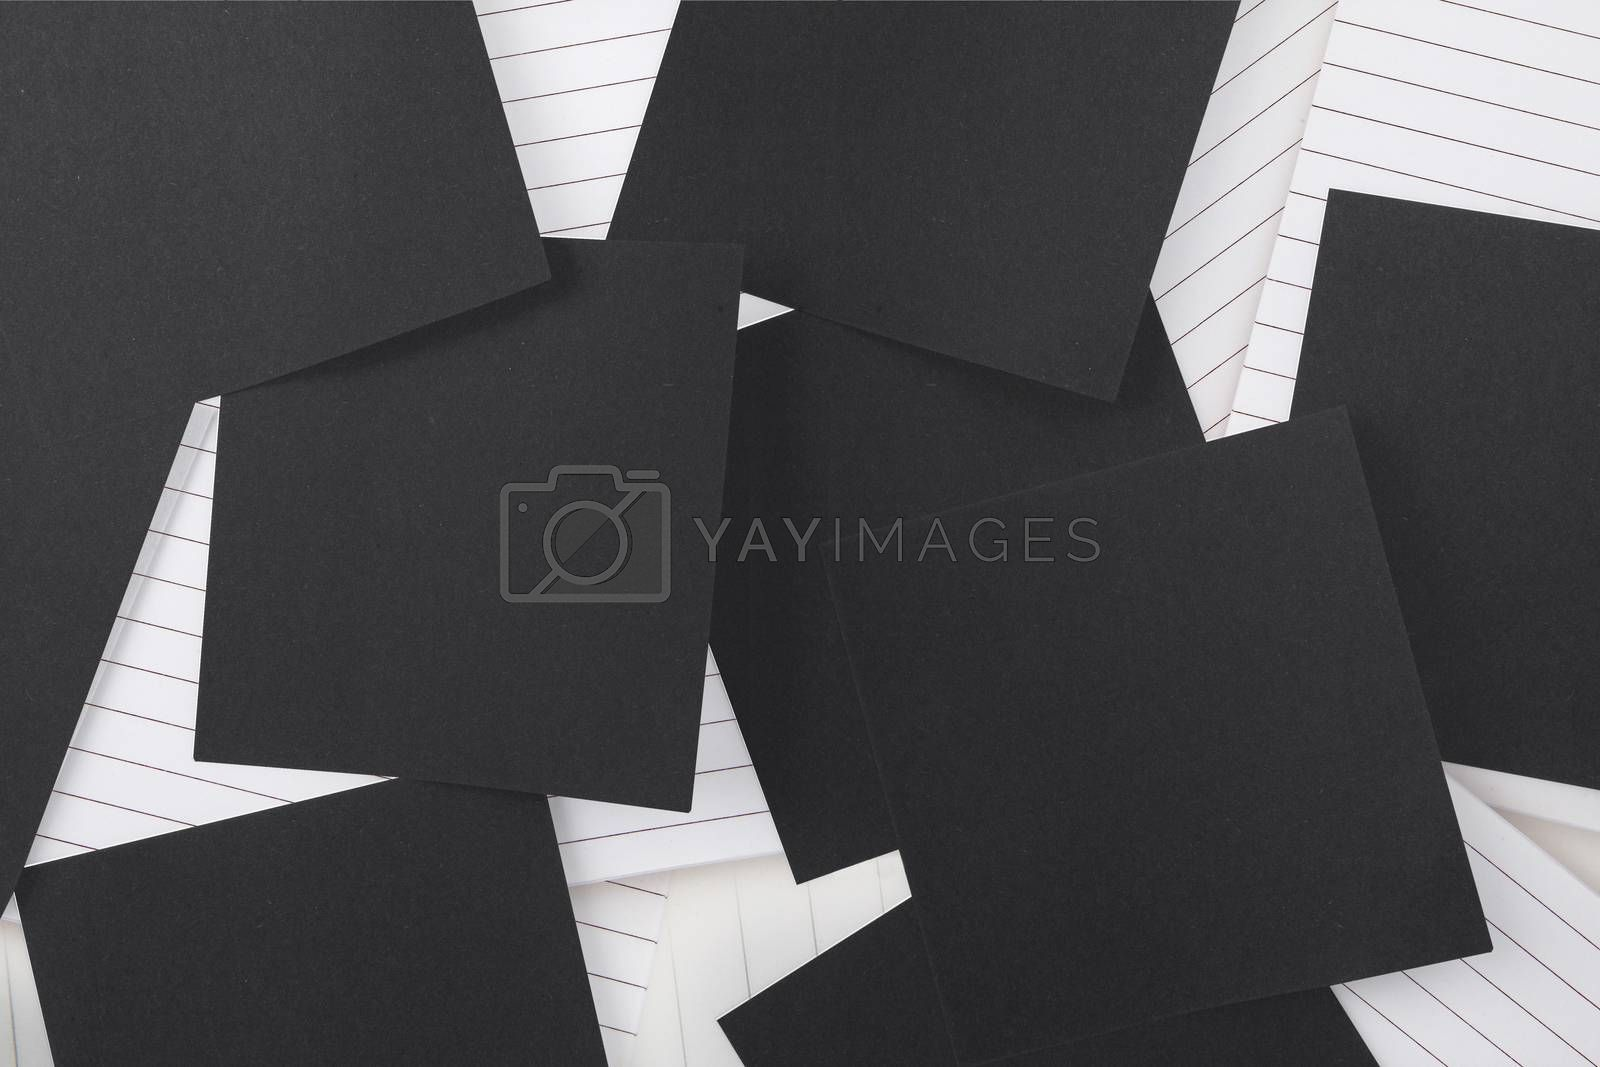 Royalty free image of Black paper strewn over notepad by Wavebreakmedia